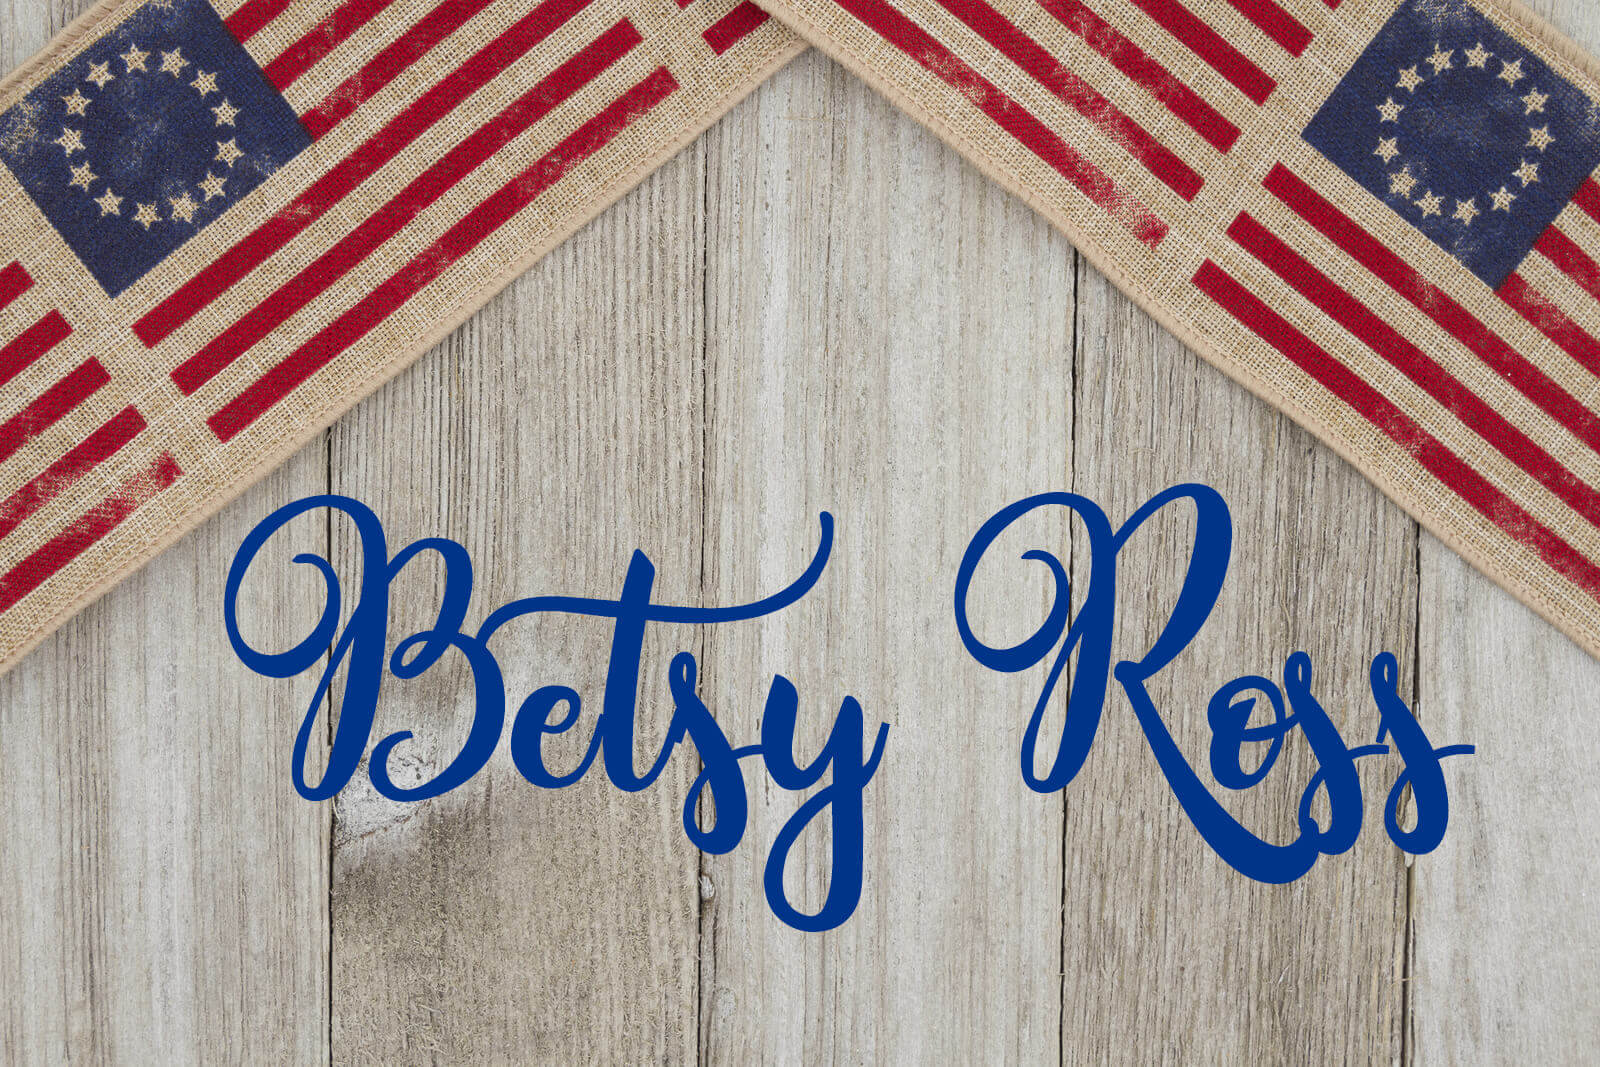 Betsy Ross 187 Resources 187 Surfnetkids